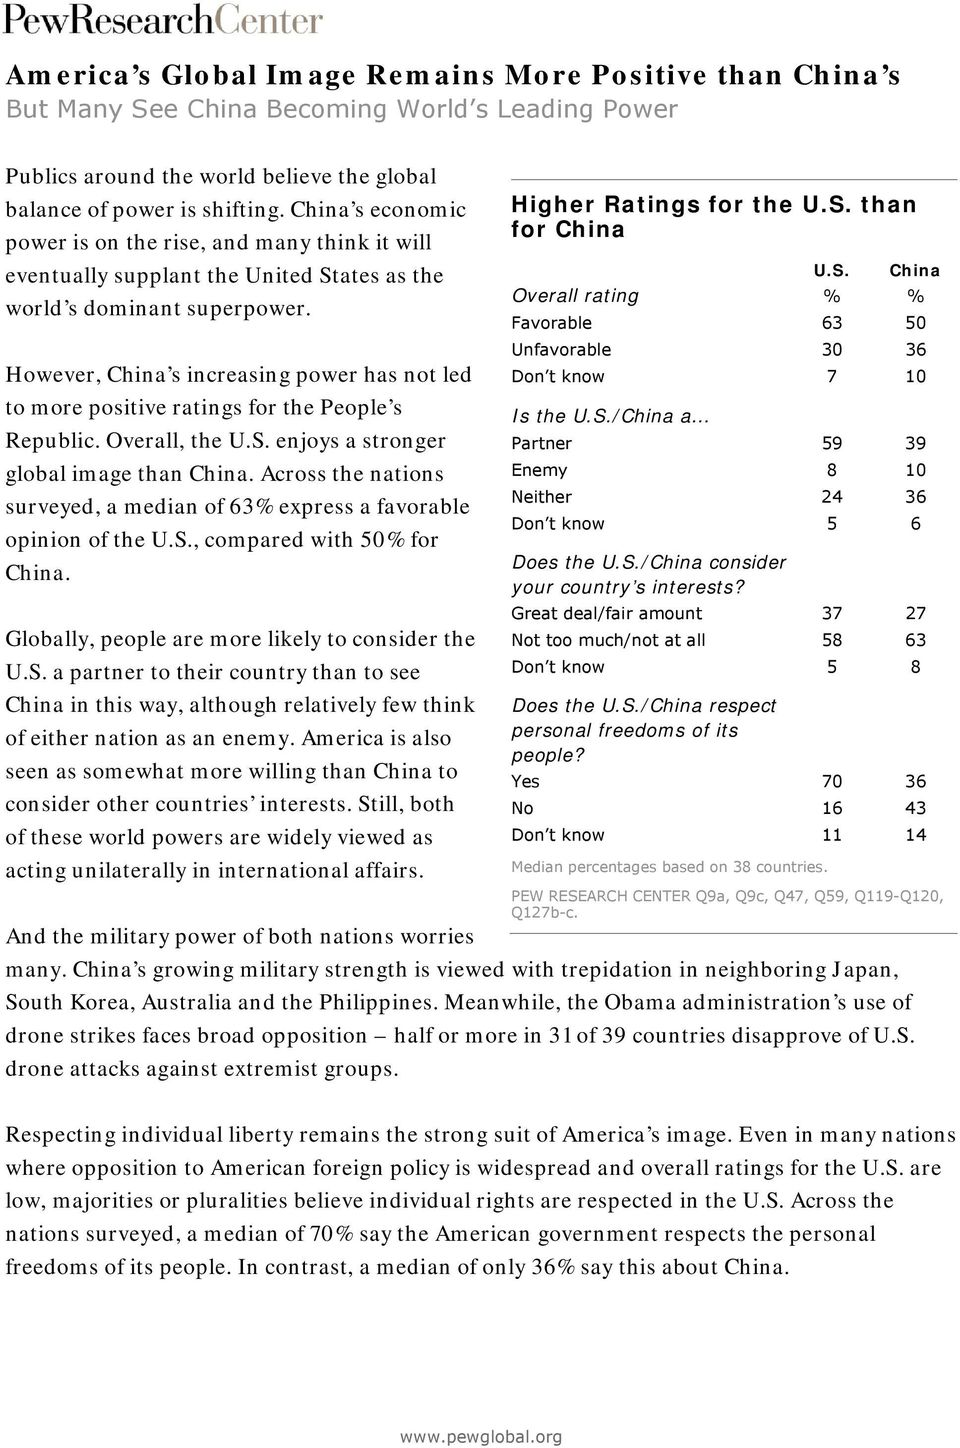 However, China s increasing power has not led to more positive ratings for the People s Republic. Overall, the U.S. enjoys a stronger global image than China.